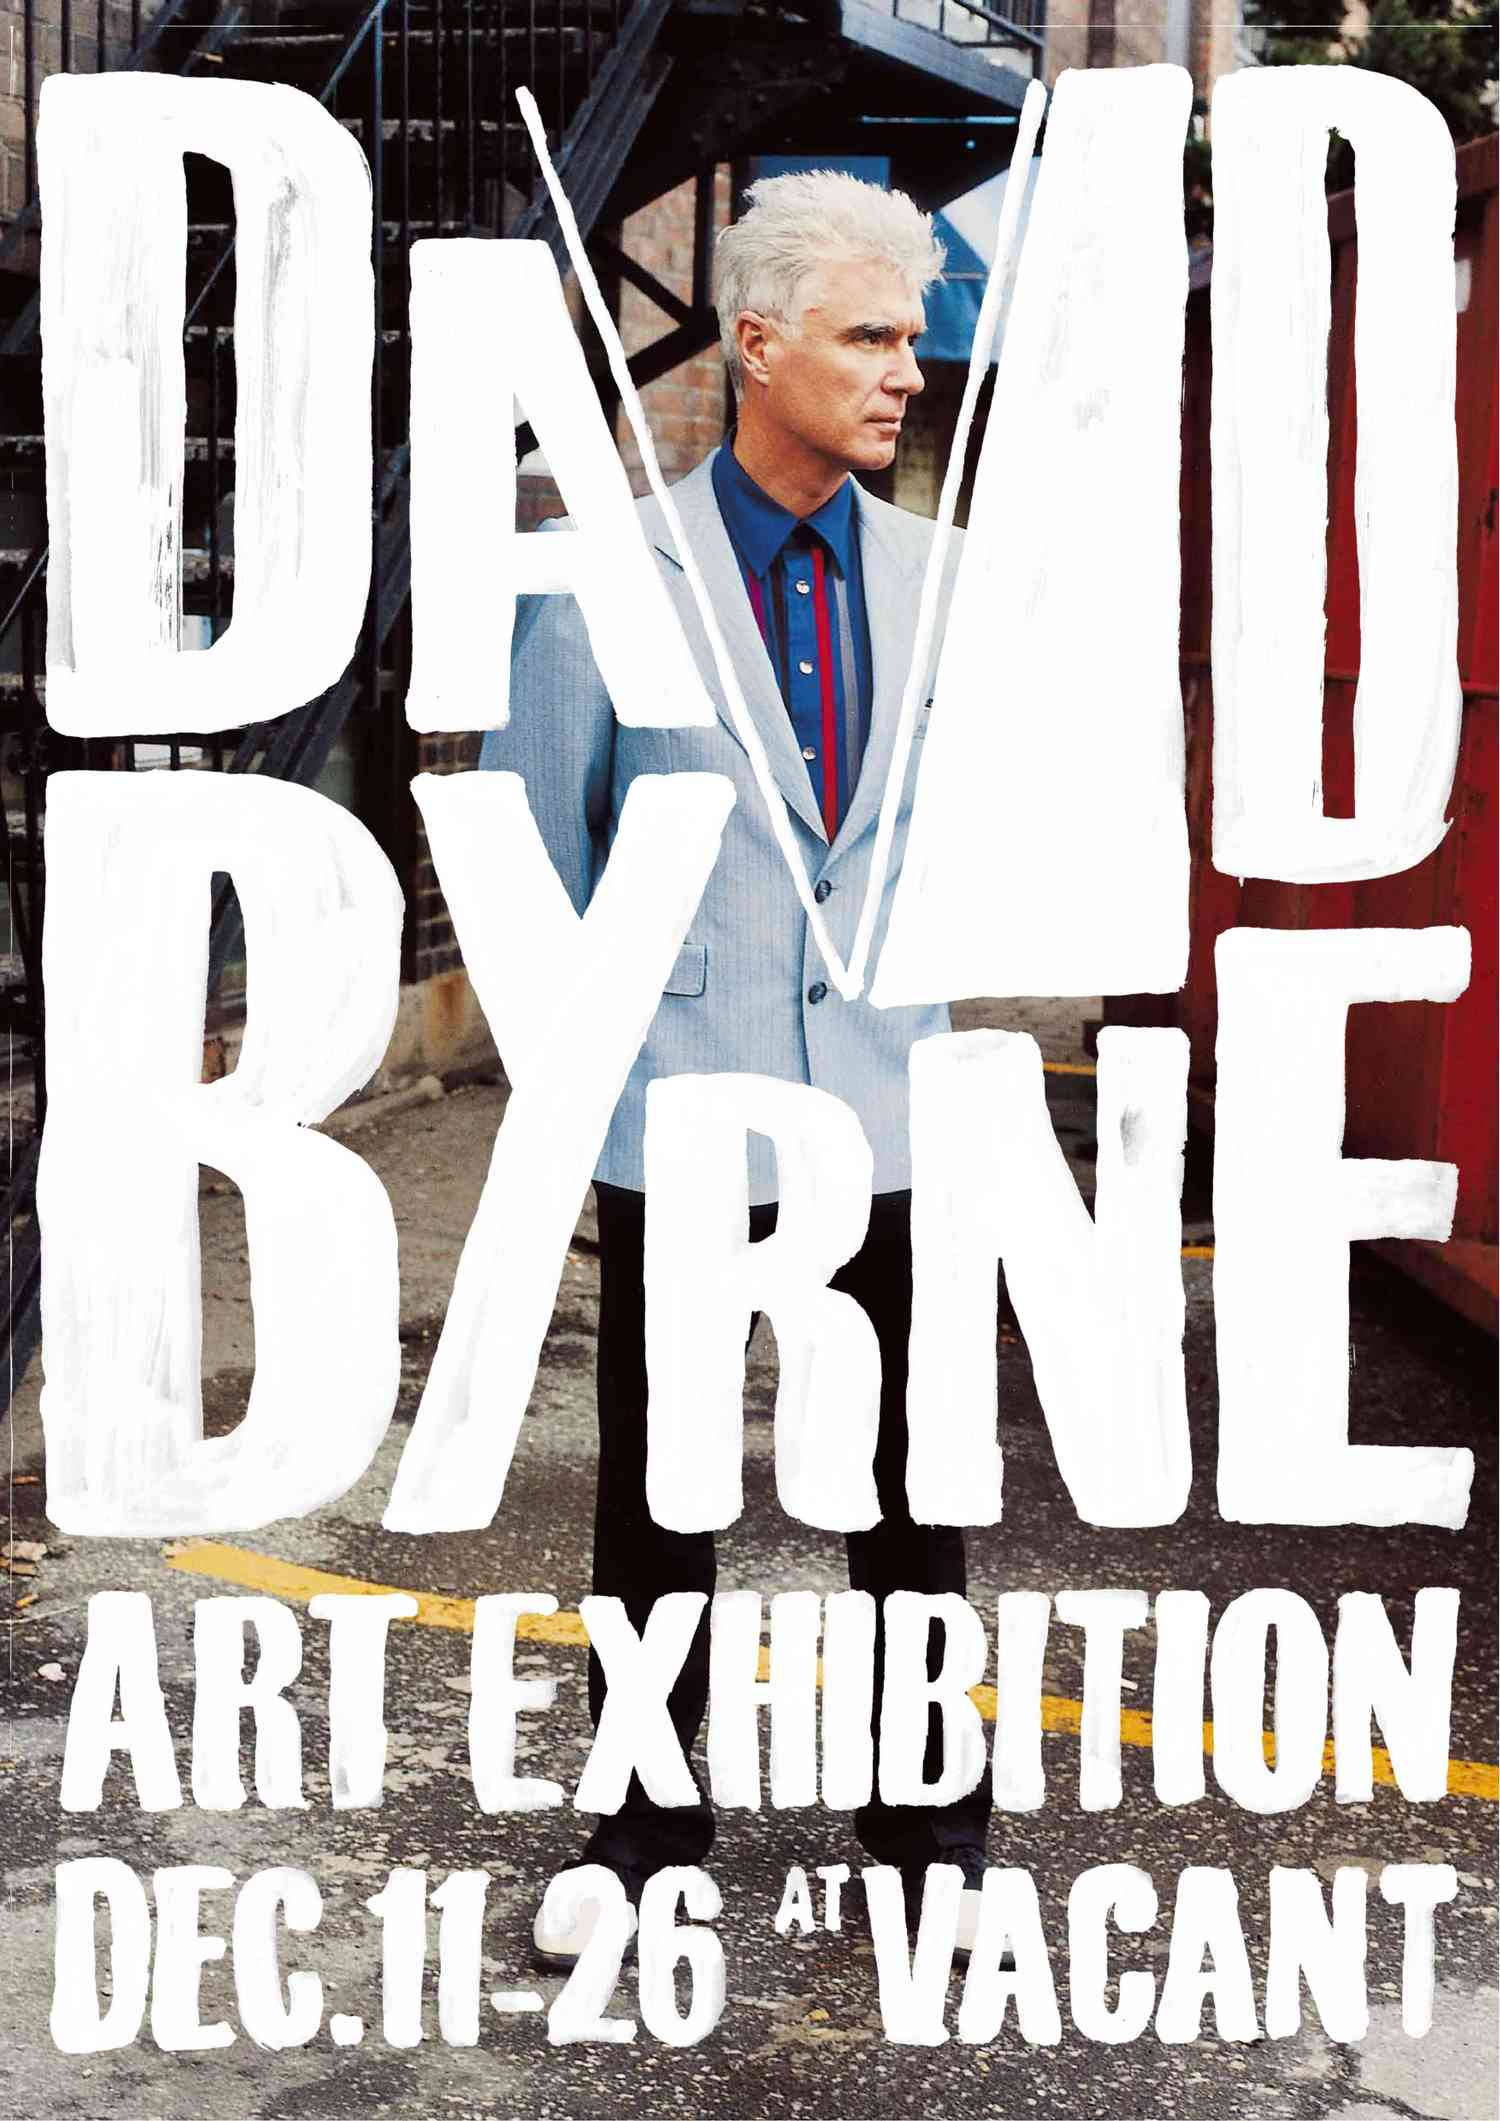 """David Byrne – Art Exhibition"", an event jointly organized by David Byrne, VACANT Gallery and CAT Team in Tokyo (2010)"